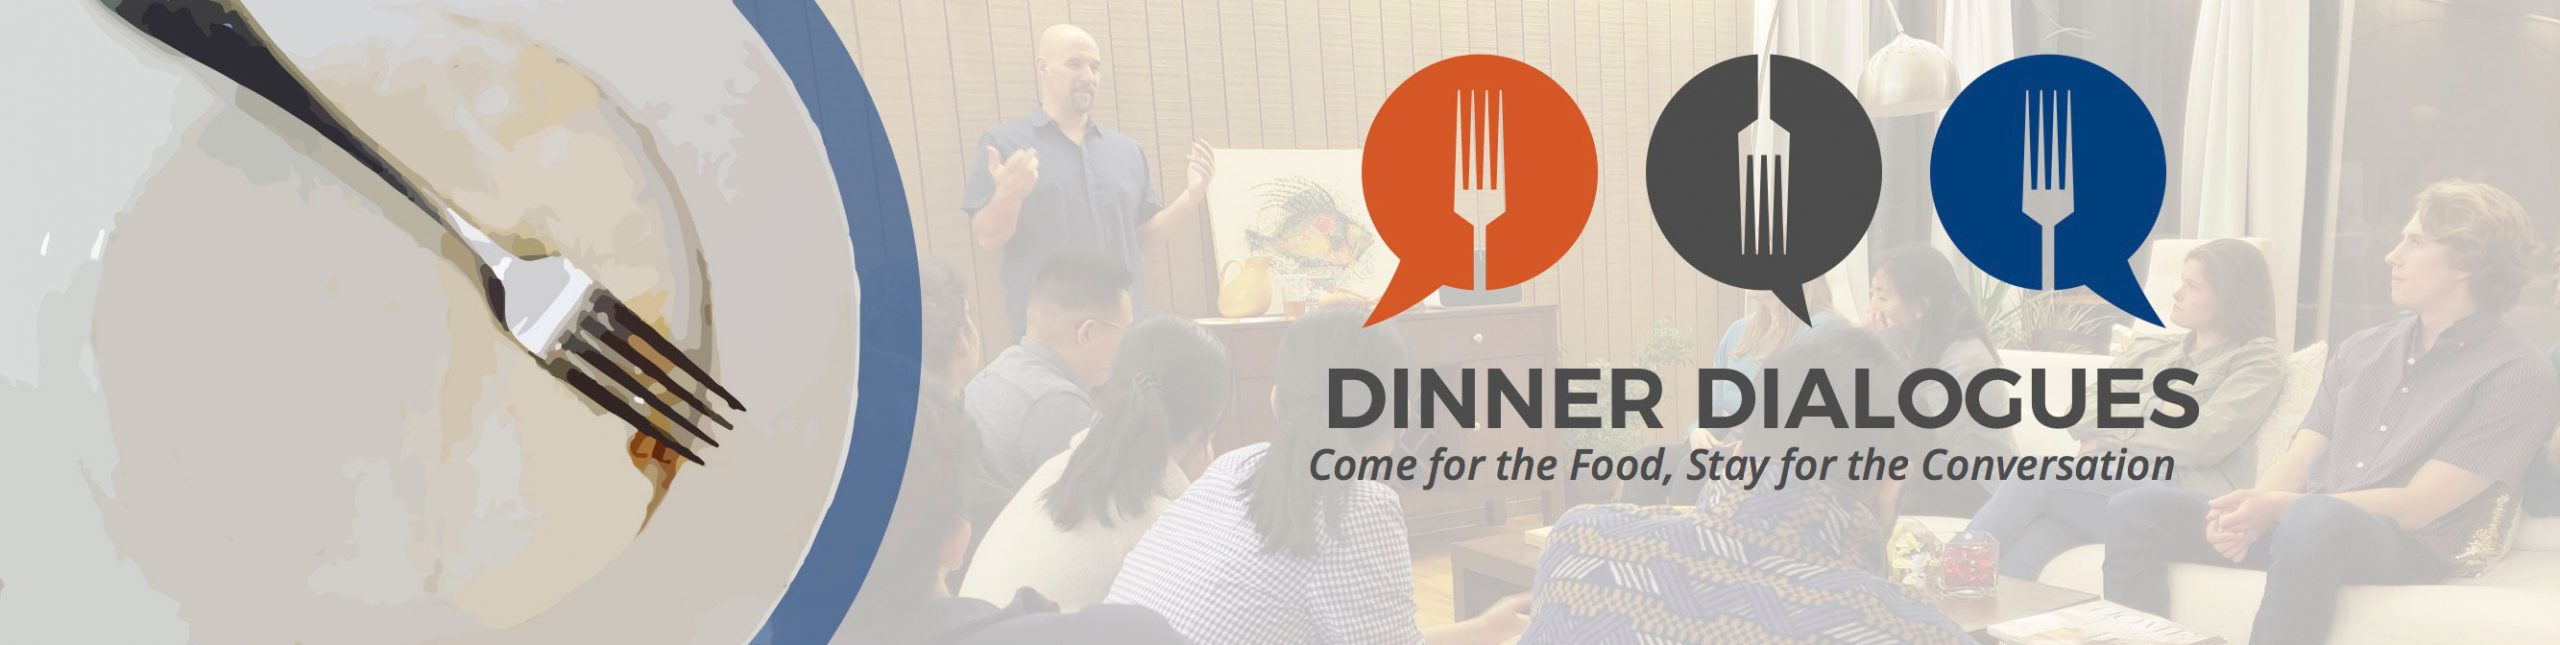 Dinner Dialogues: Come for the Food, Stay for the Conversation